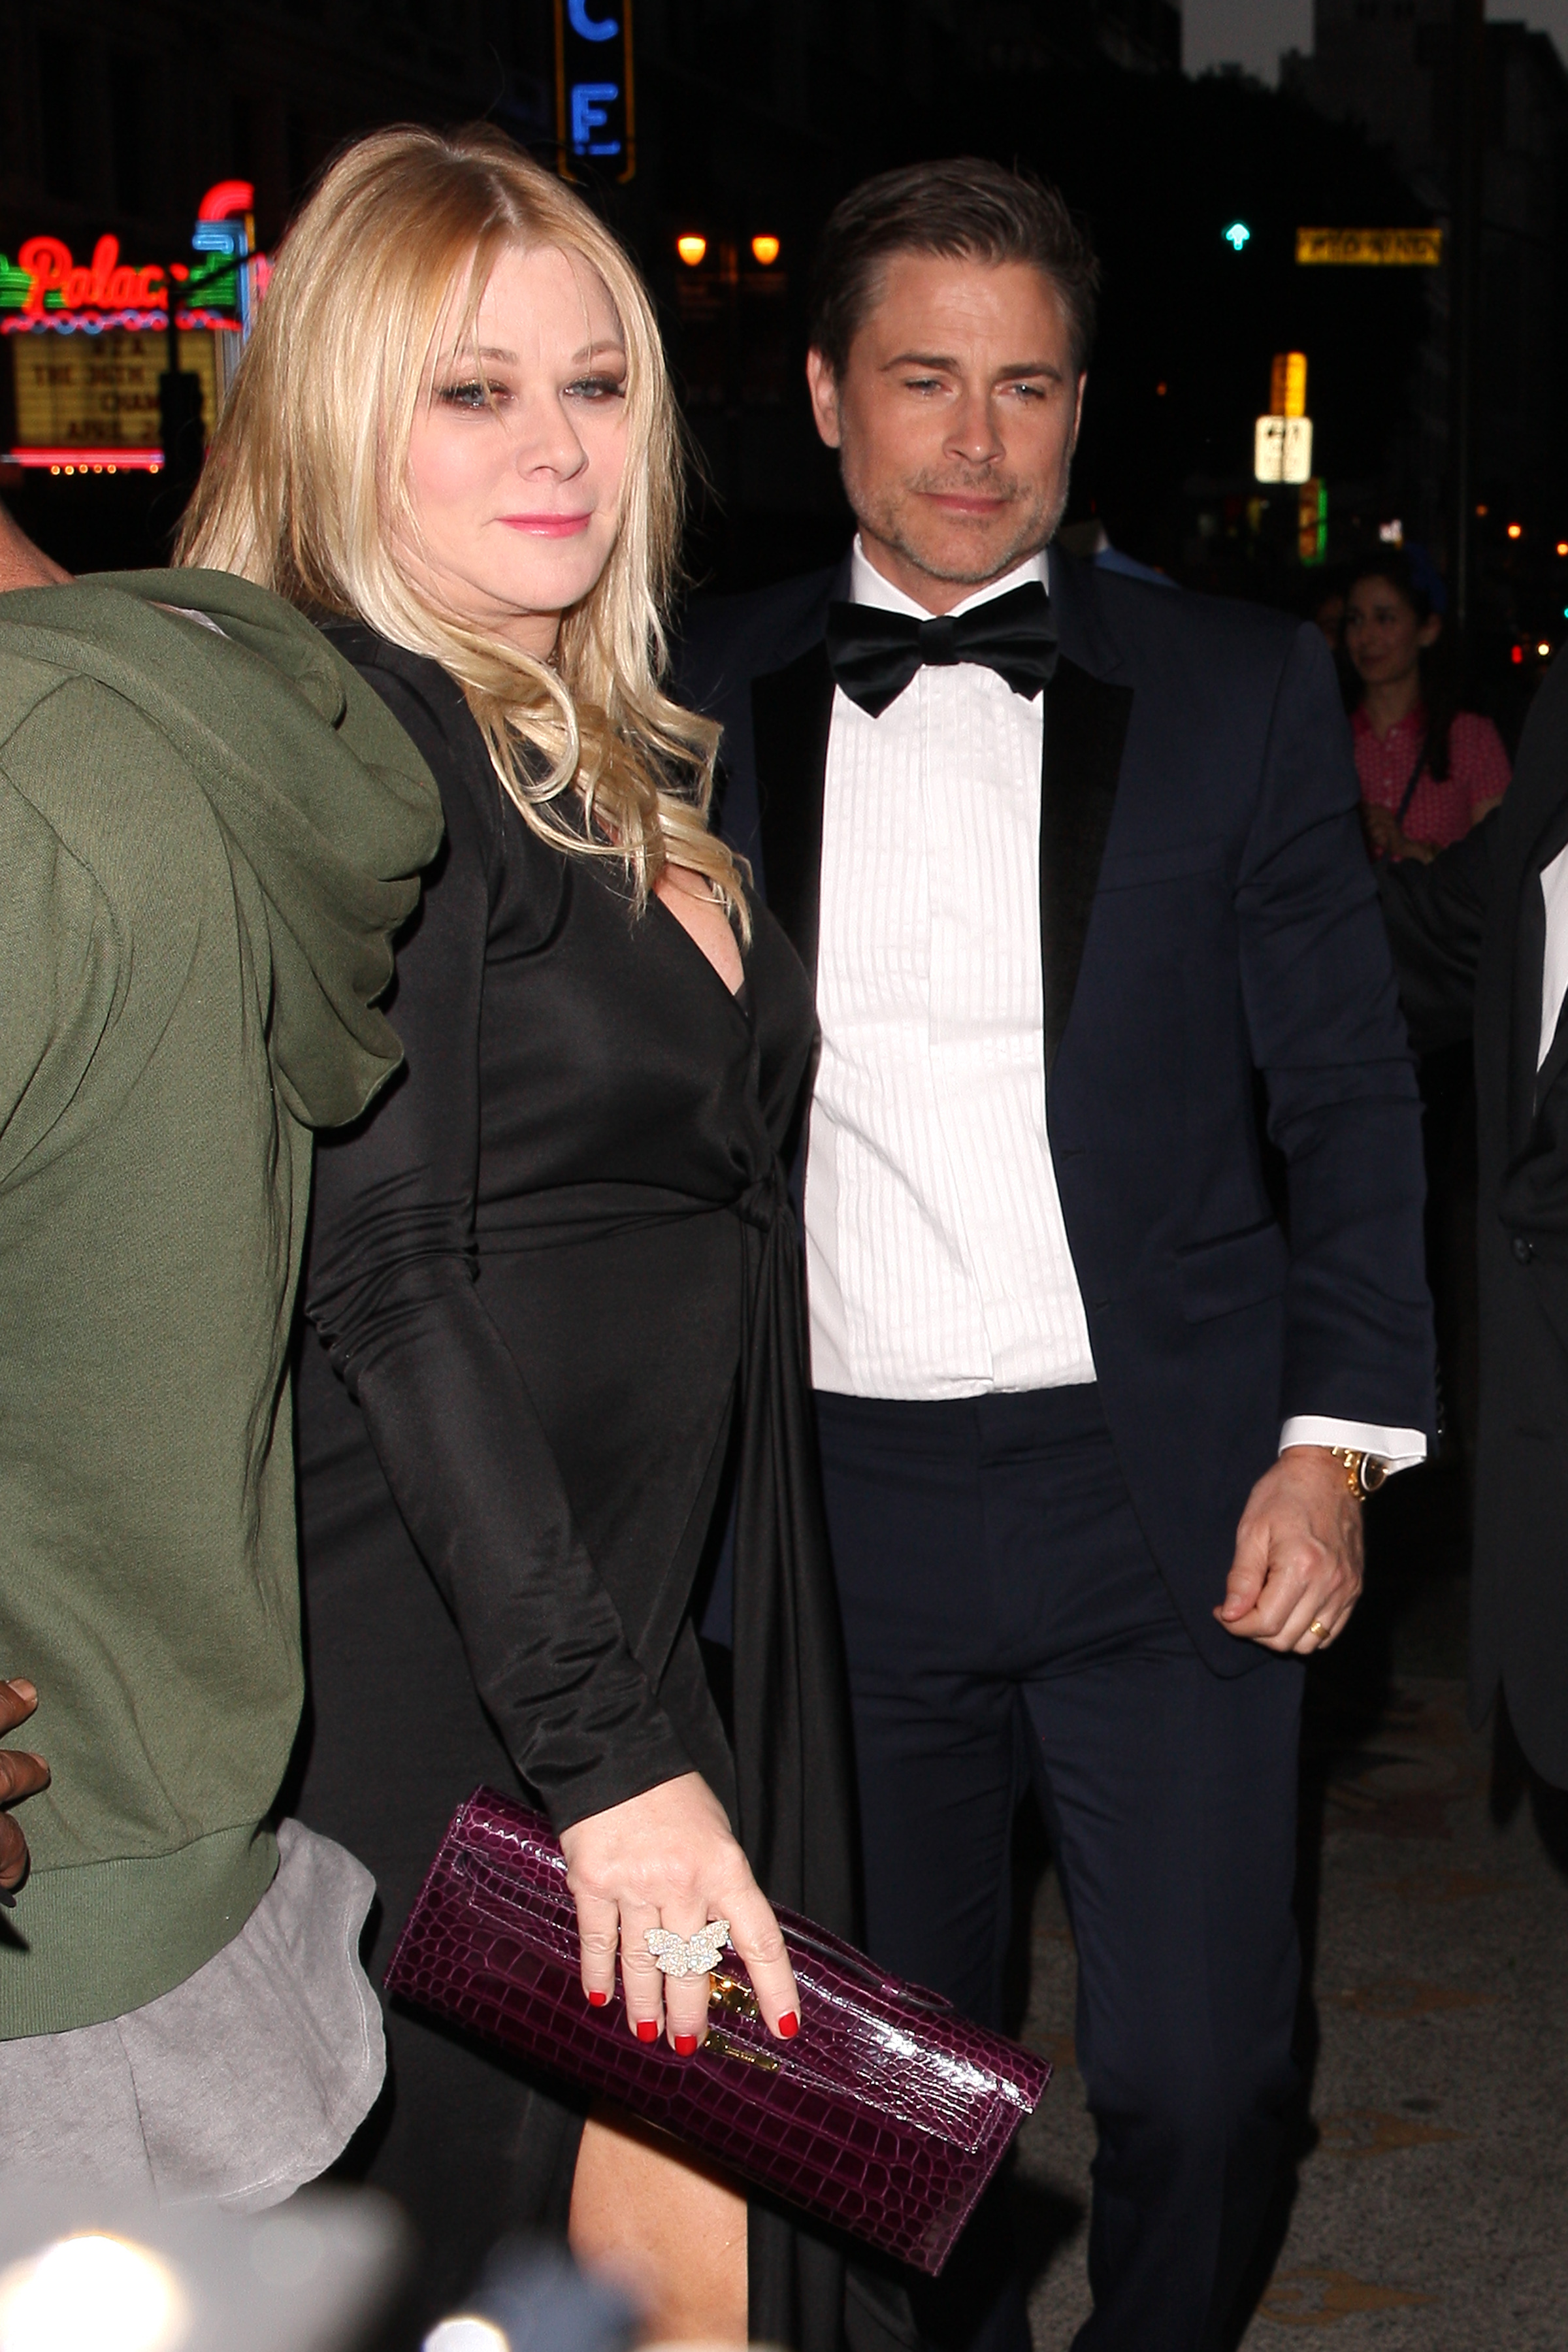 Rob Lowe and wife Sheryl Berkoff arrive at Gwyneth Paltrow and Brad Falchuk's engagement party at the Los Angeles Theater in downtown L.A. on April 14, 2018.